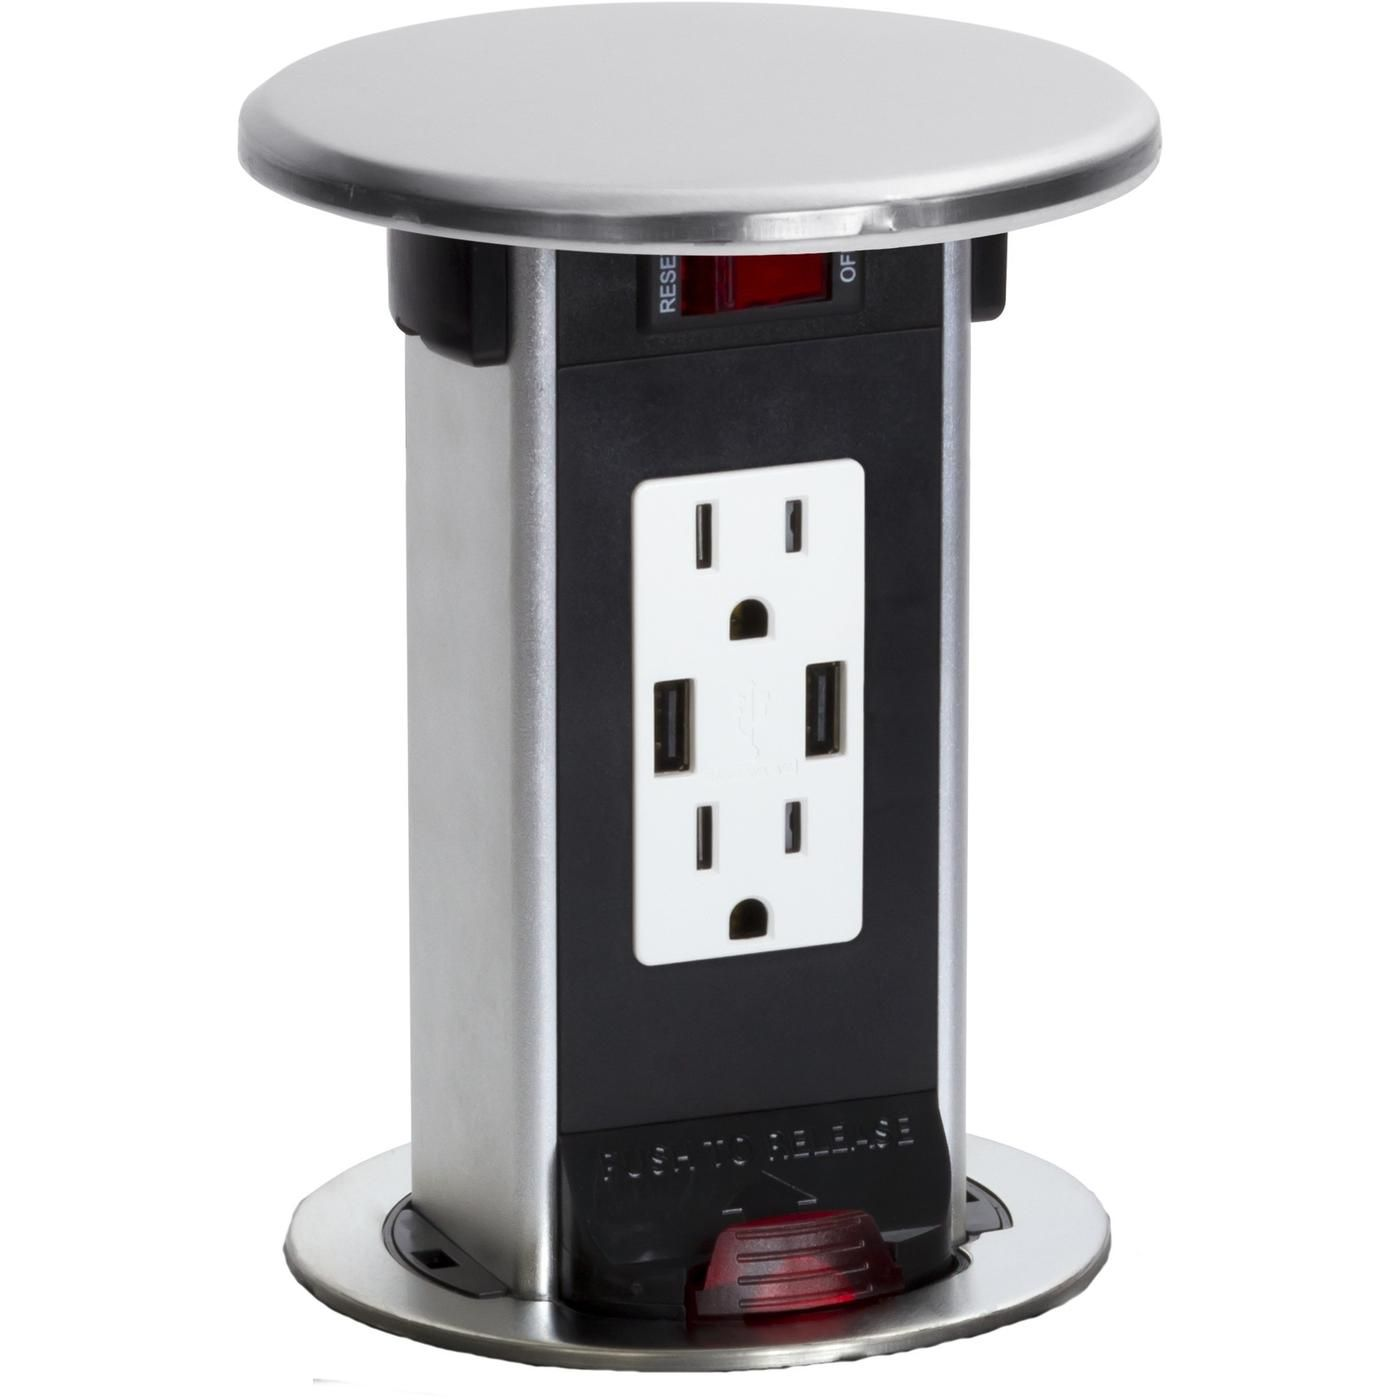 Pop Up Outlets For Kitchen Cost To Refinish Cabinets Counter Spill Proof Round 15a Usb Outlet